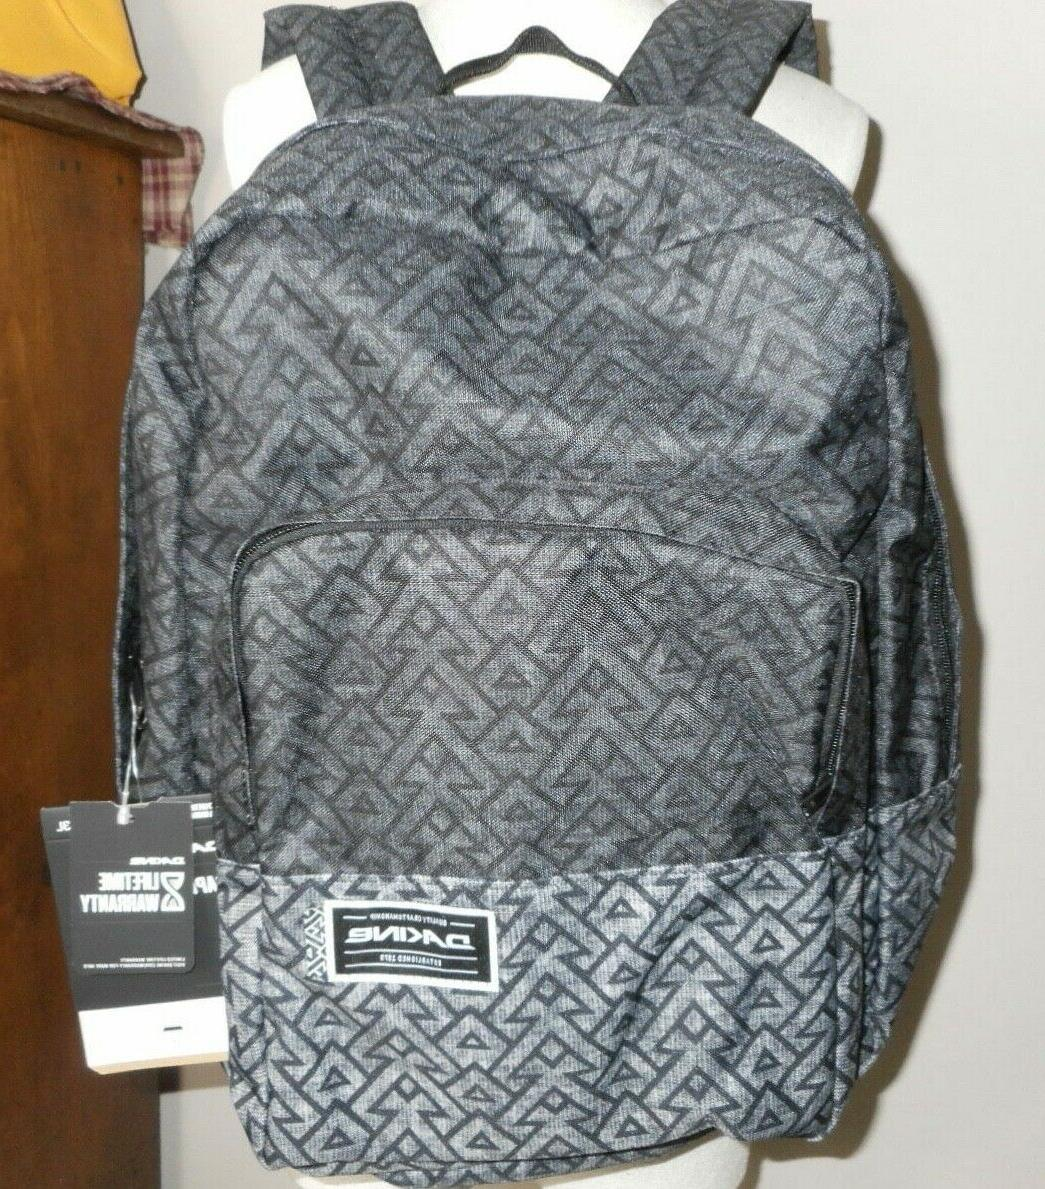 new capitol 23l laptop backpack bag in